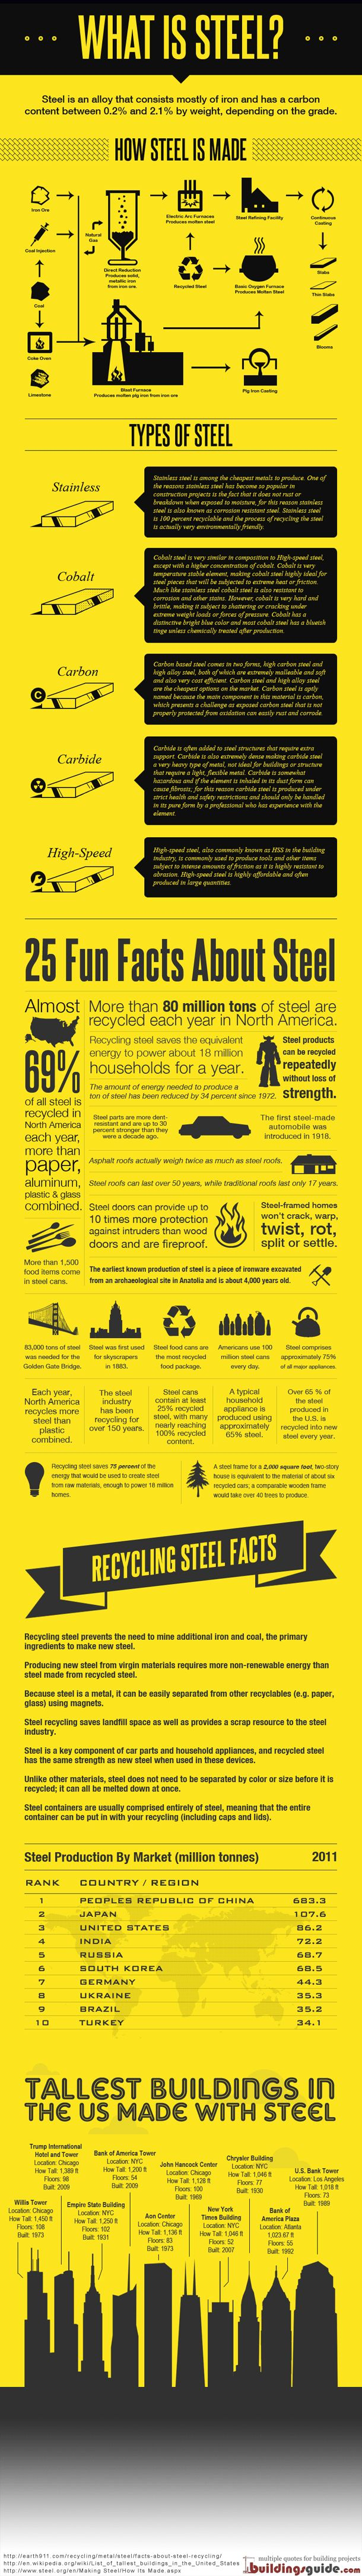 The Cold, Hard Truth About Recycling Steel!    According to the American Iron and Steel Institute, technological advances have seen the energy intensity needed to produce a ton of steel drop by 27 percent since 1990, helping in part to make steel the world's most recycled material. For more information on how steel is made and recycled, check out this infographic...